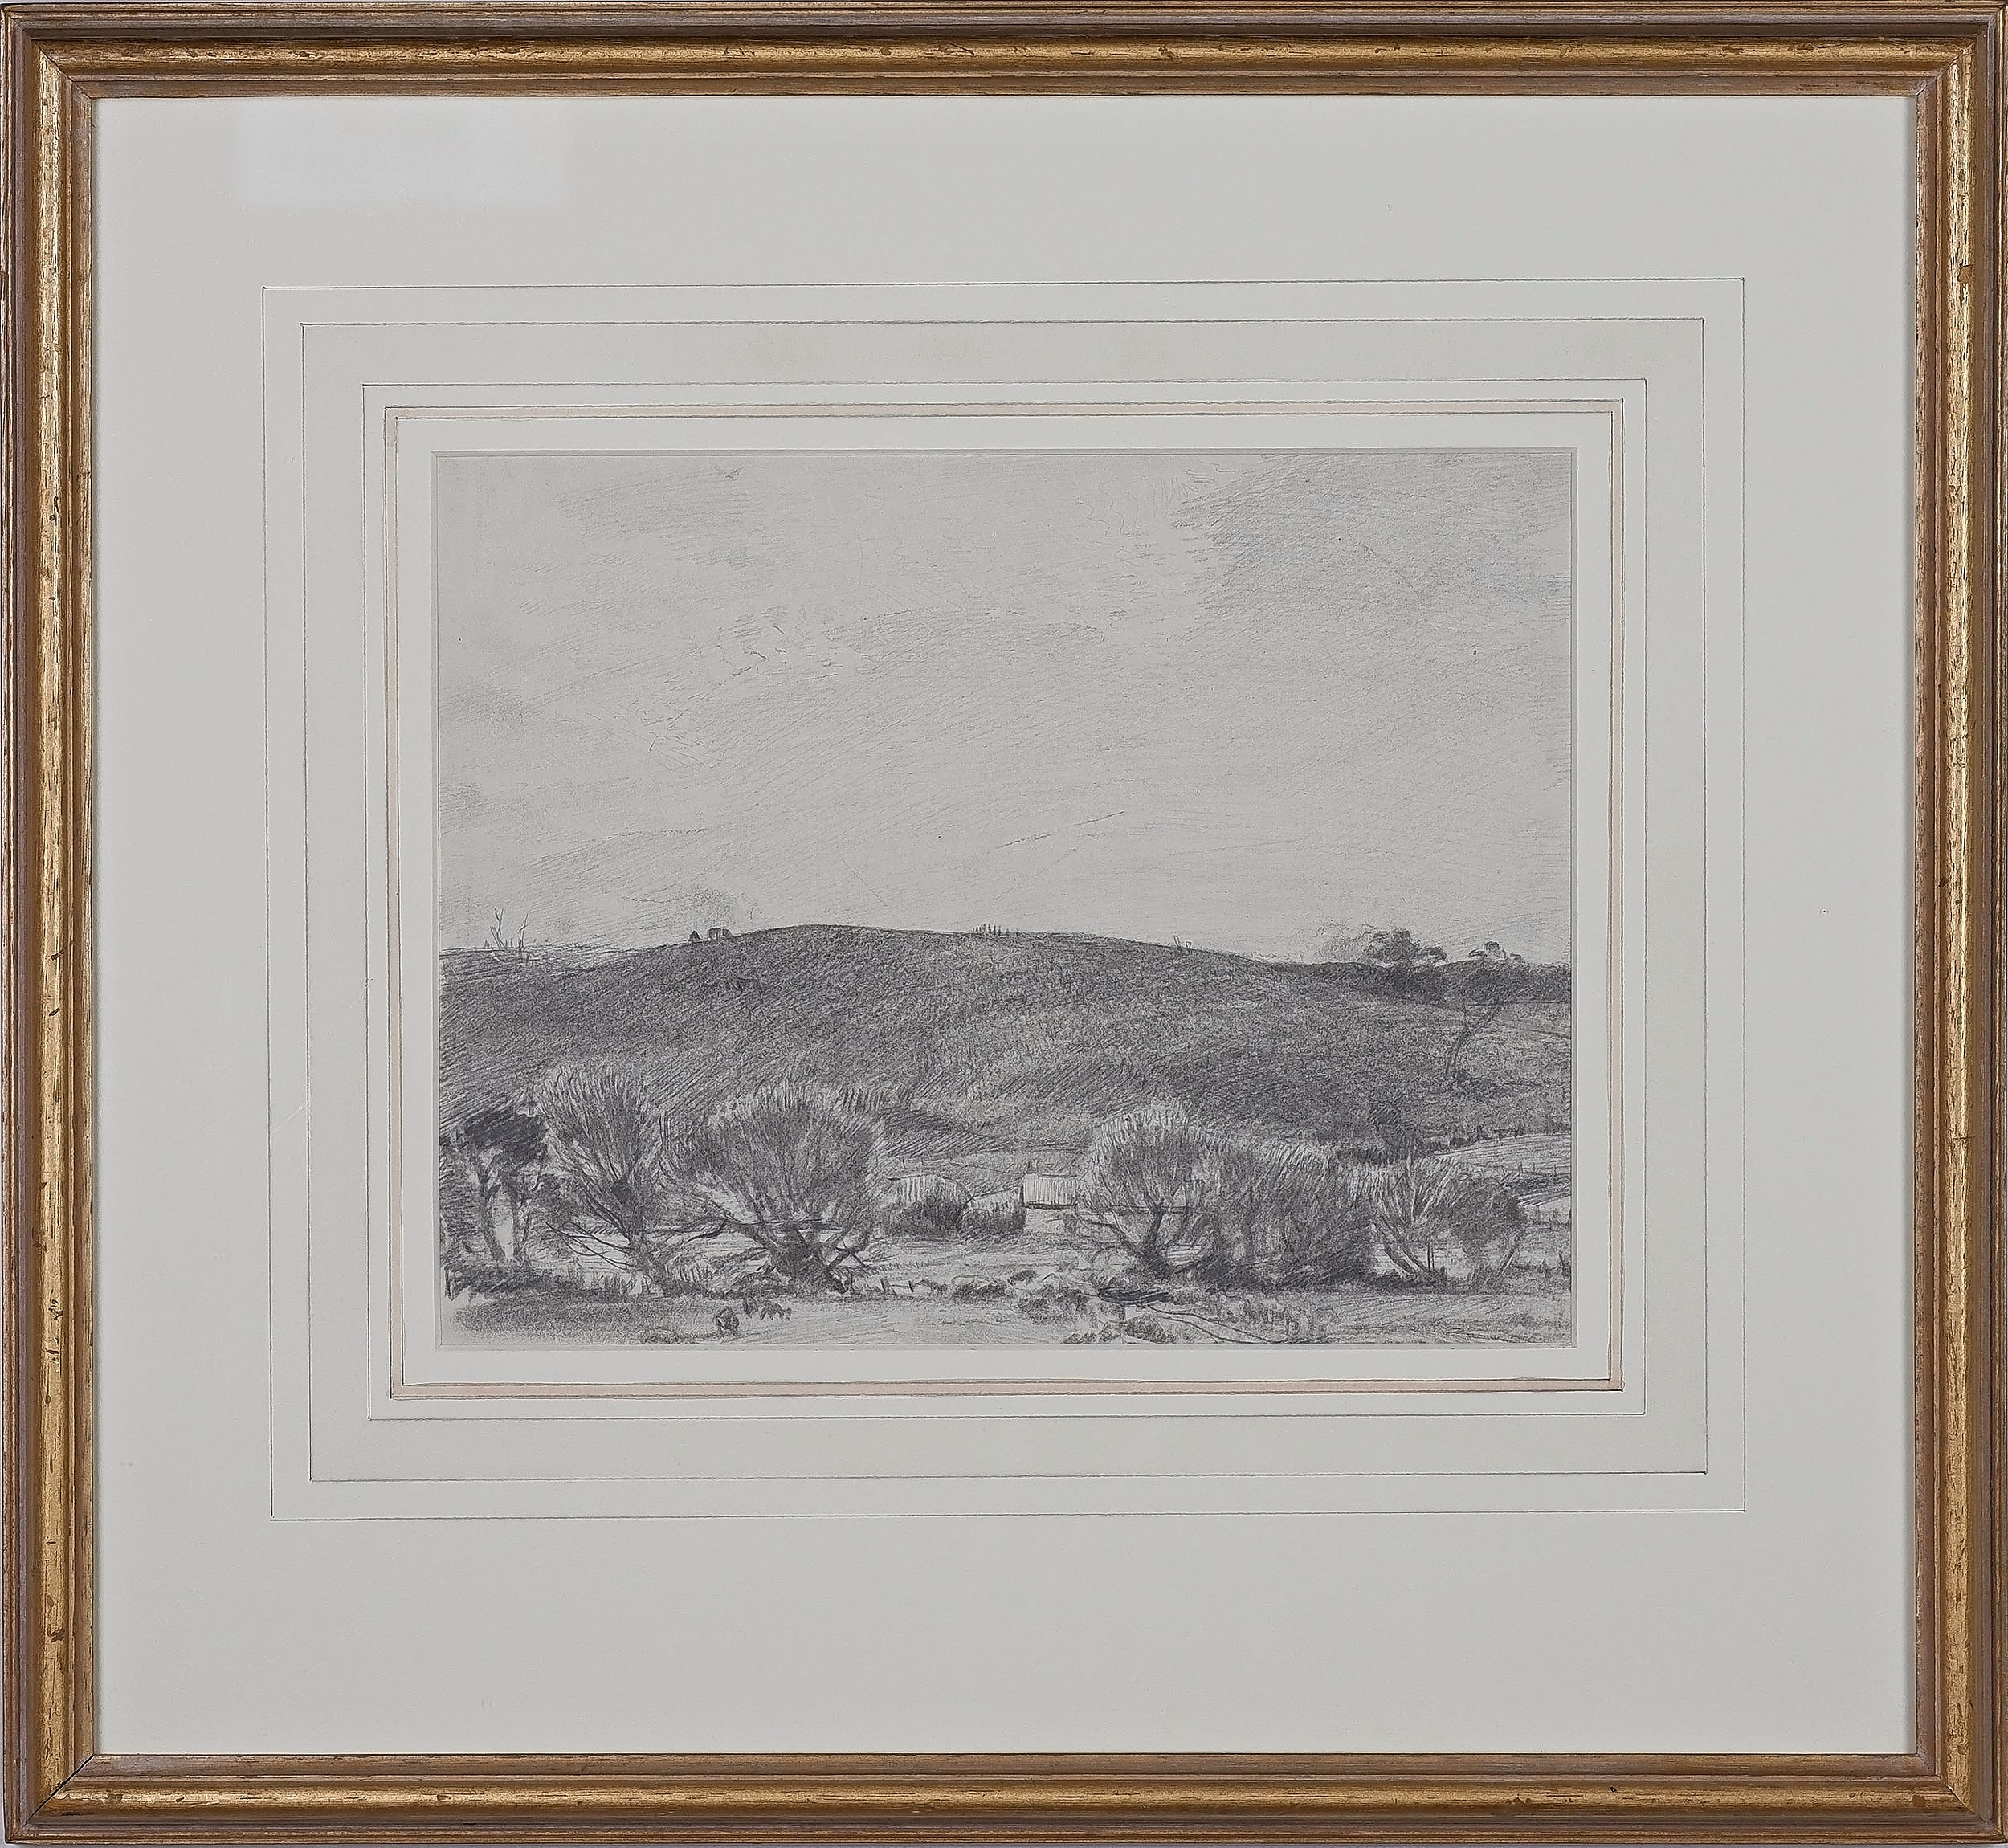 'Hans Heysen (1877-1968) Basket Willows at Balhannah, Pencil on Paper'